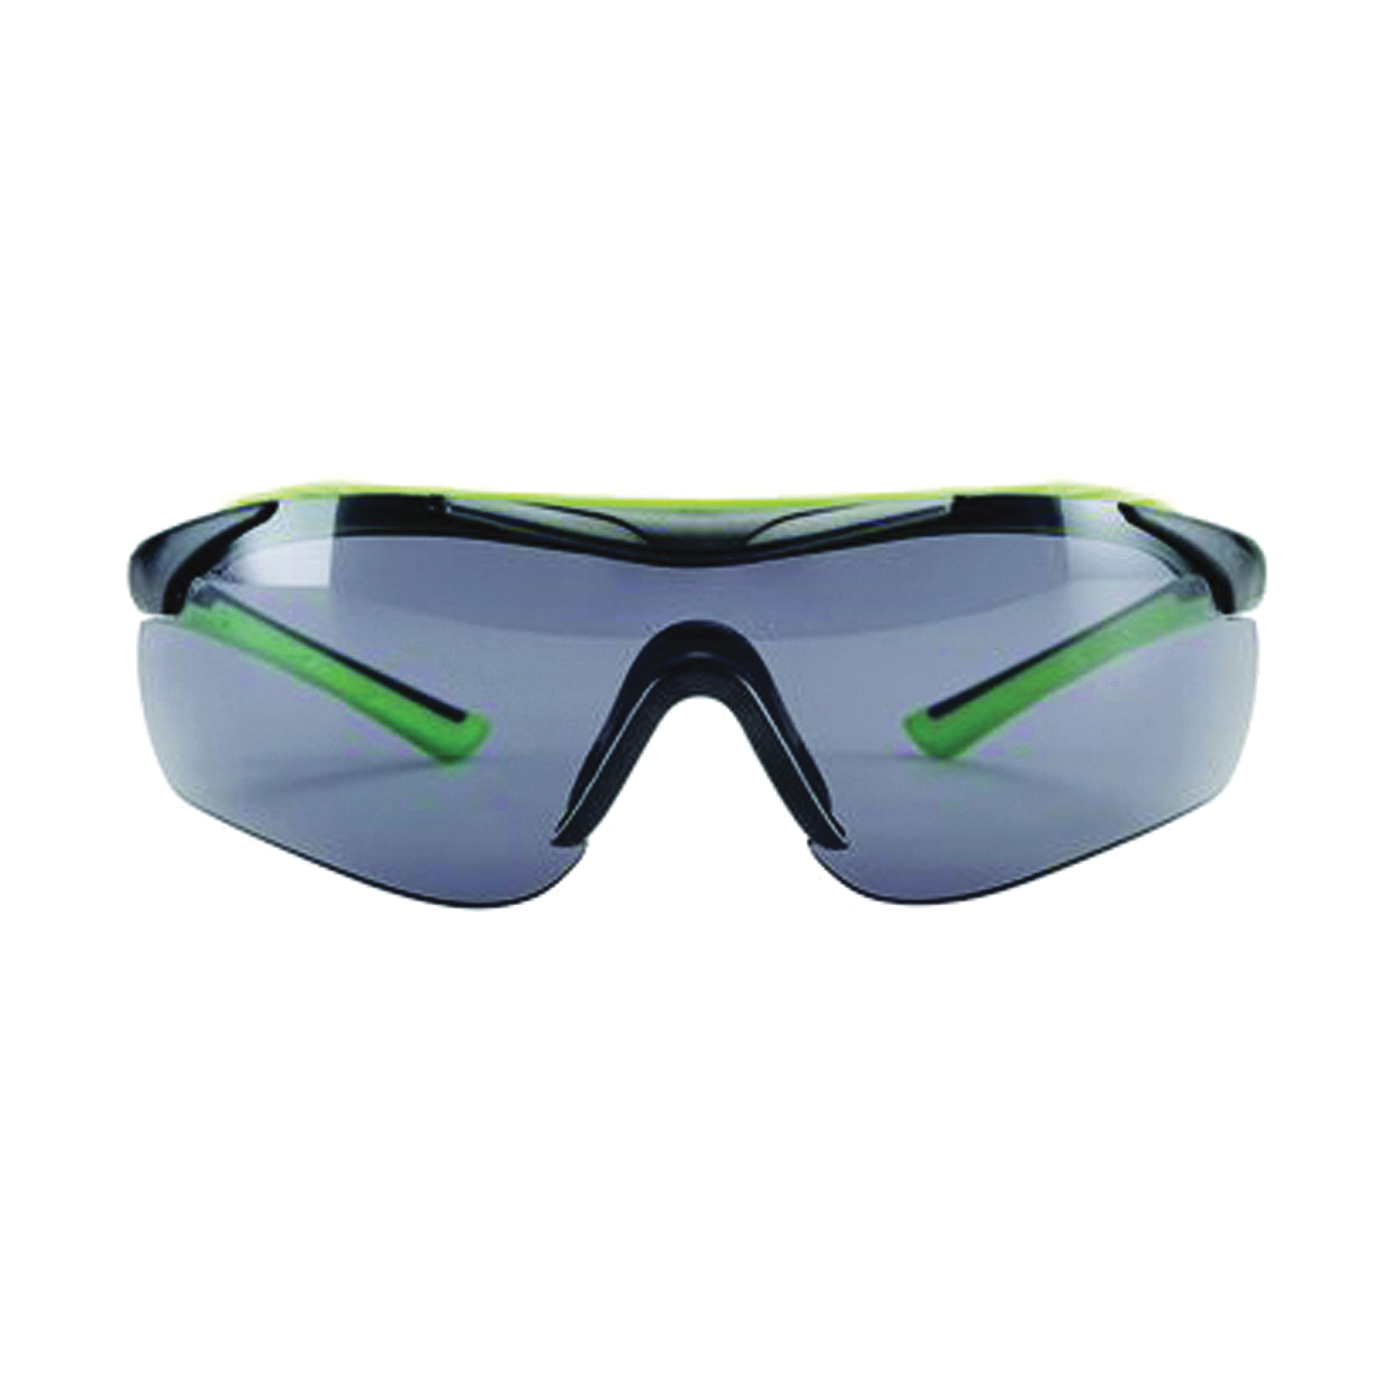 Picture of 3M 47101-WZ4 Safety Glasses, Anti-Fog, Anti-Scratch Lens, Wraparound Frame, Green/Neon Black Frame